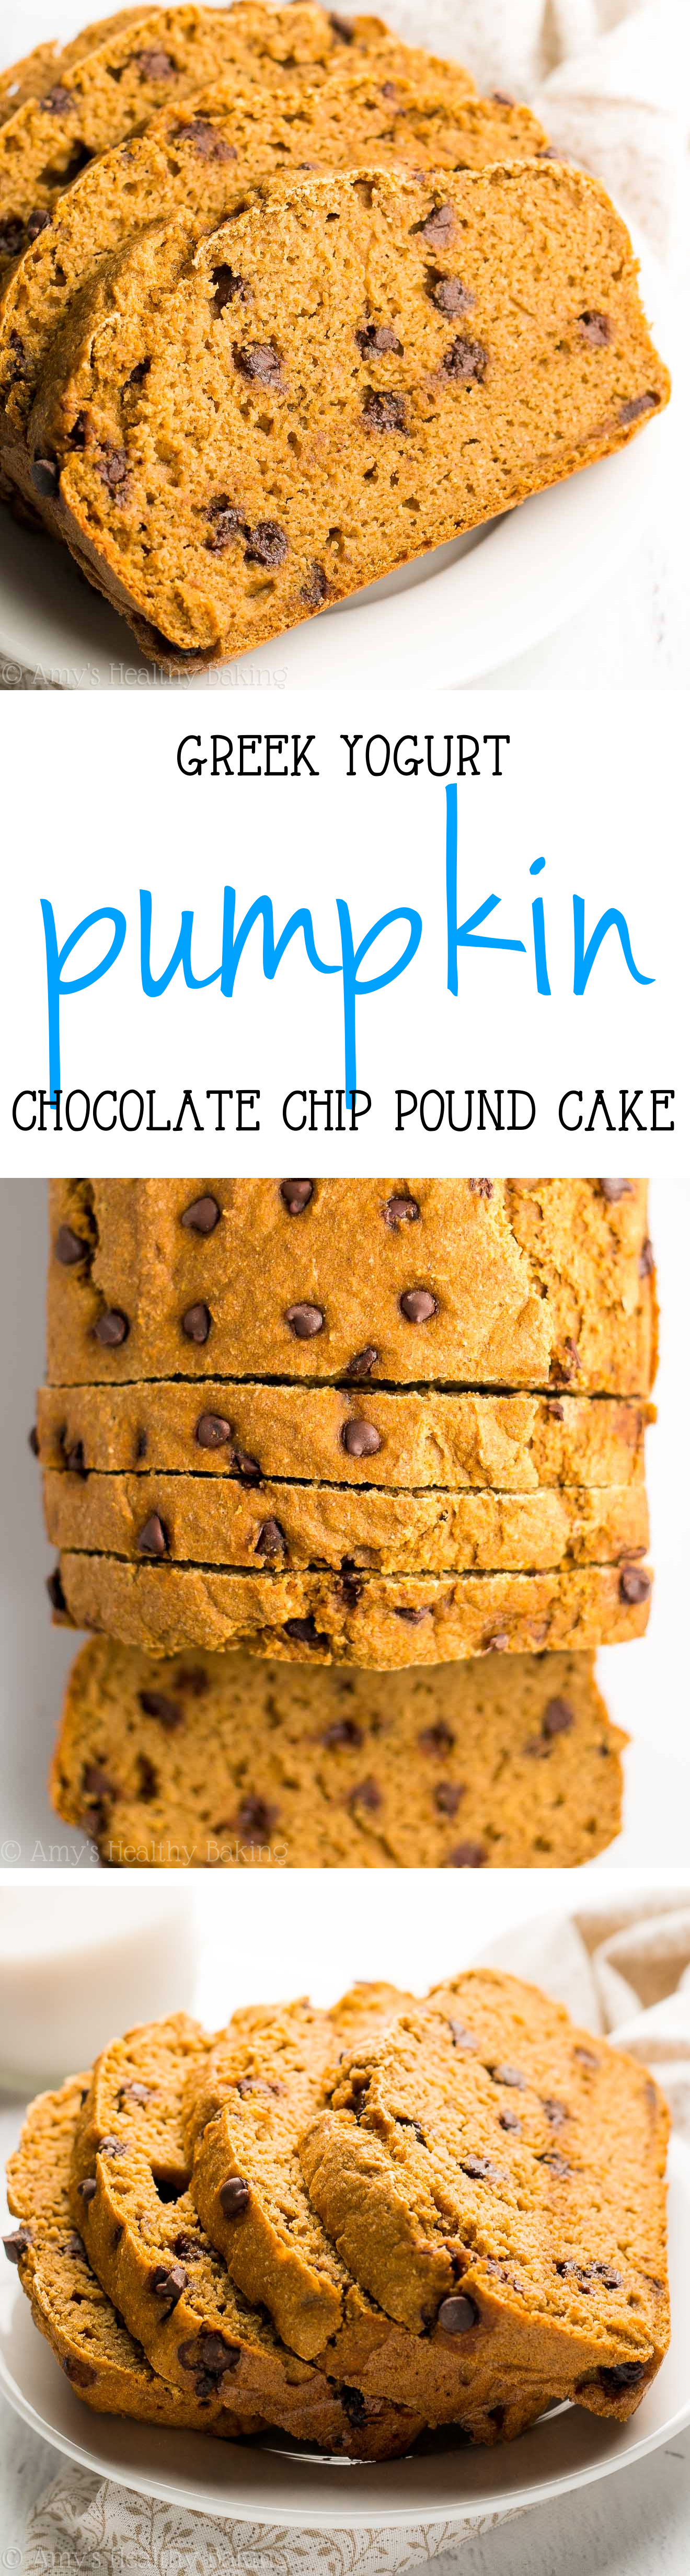 Skinny Greek Yogurt Pumpkin Chocolate Chip Pound Cake -- just 150 calories & 6g+ of protein! Practically healthy enough for breakfast!